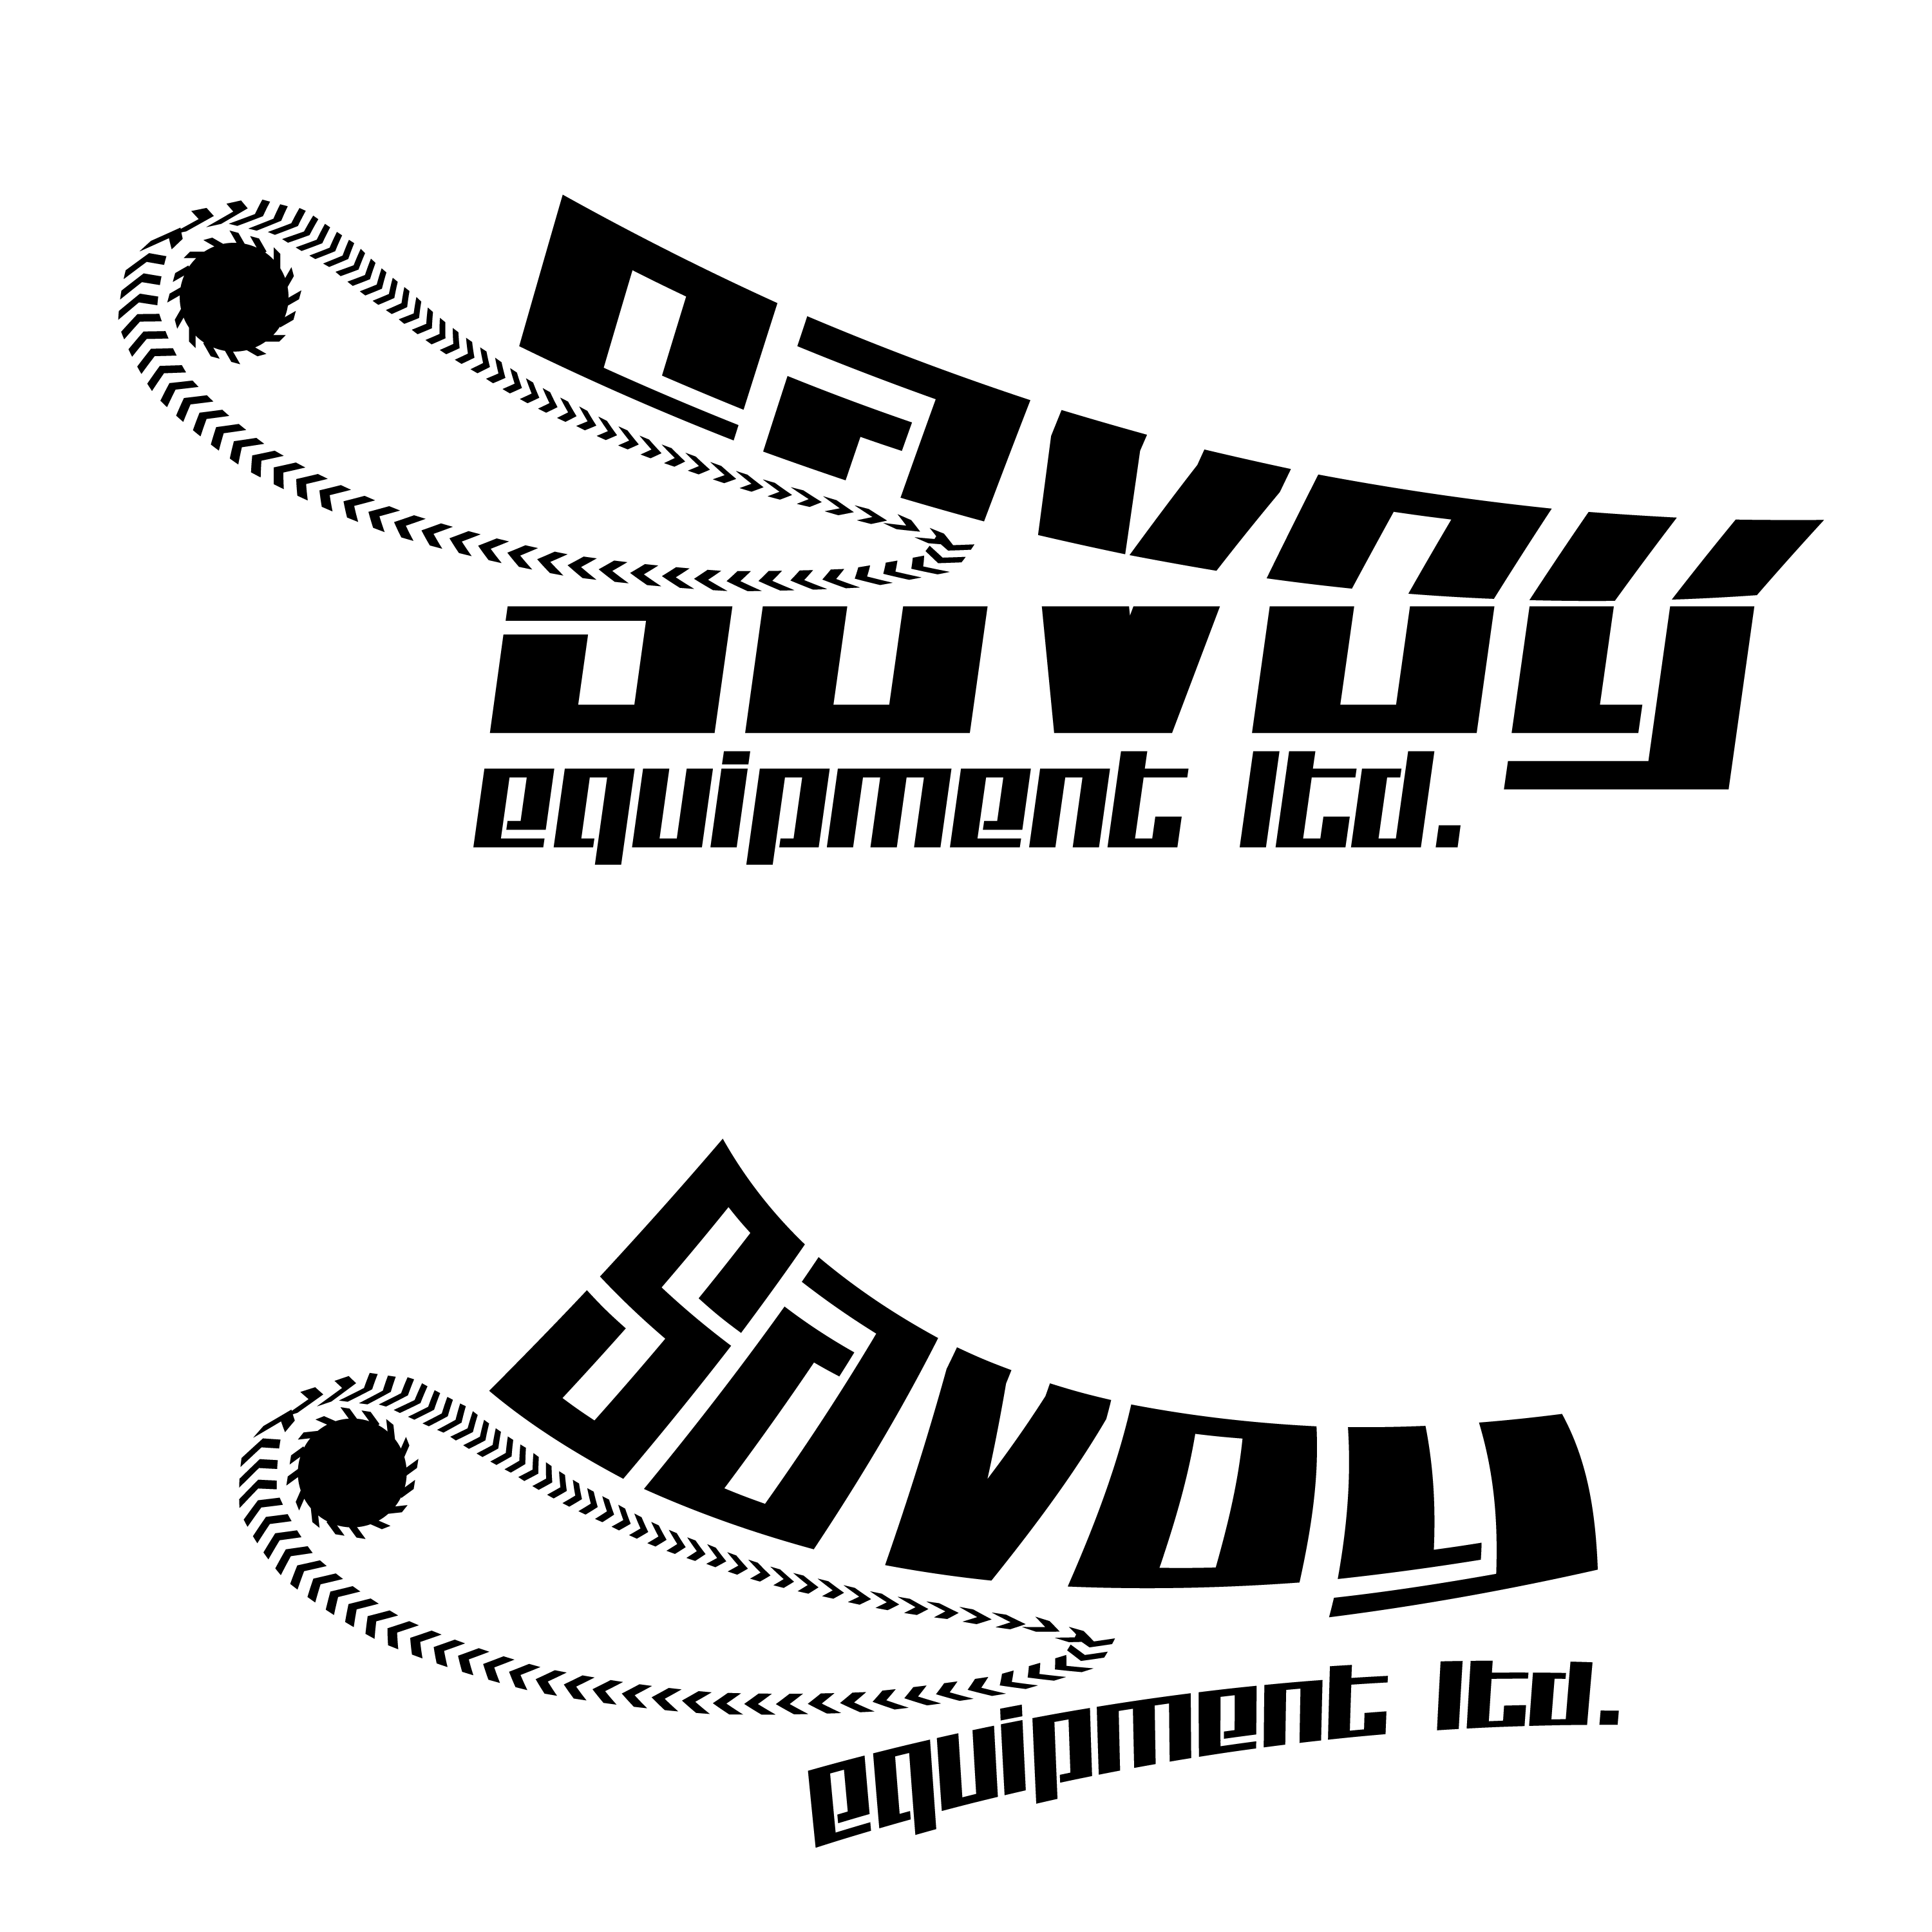 Logo Design by ISaac Law - Entry No. 112 in the Logo Design Contest Inspiring Logo Design for Savoy Equipment Ltd..